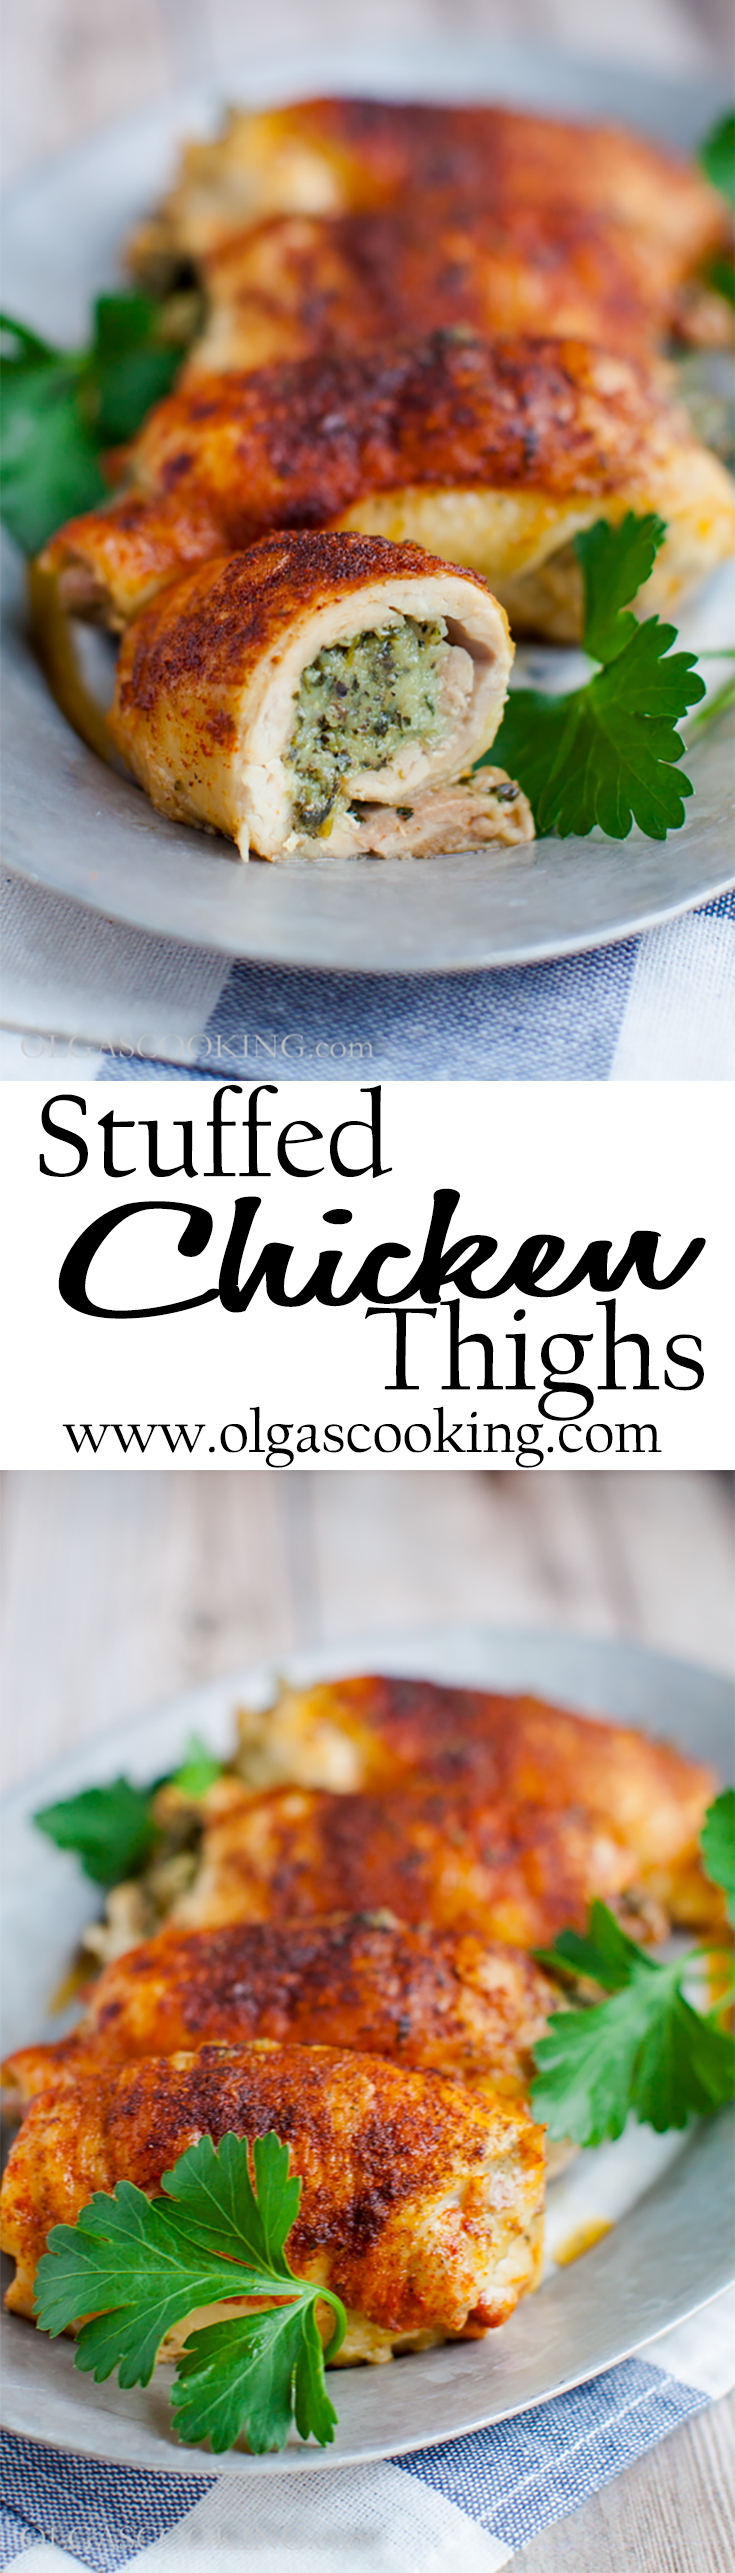 Stuffed Chicken Thighs